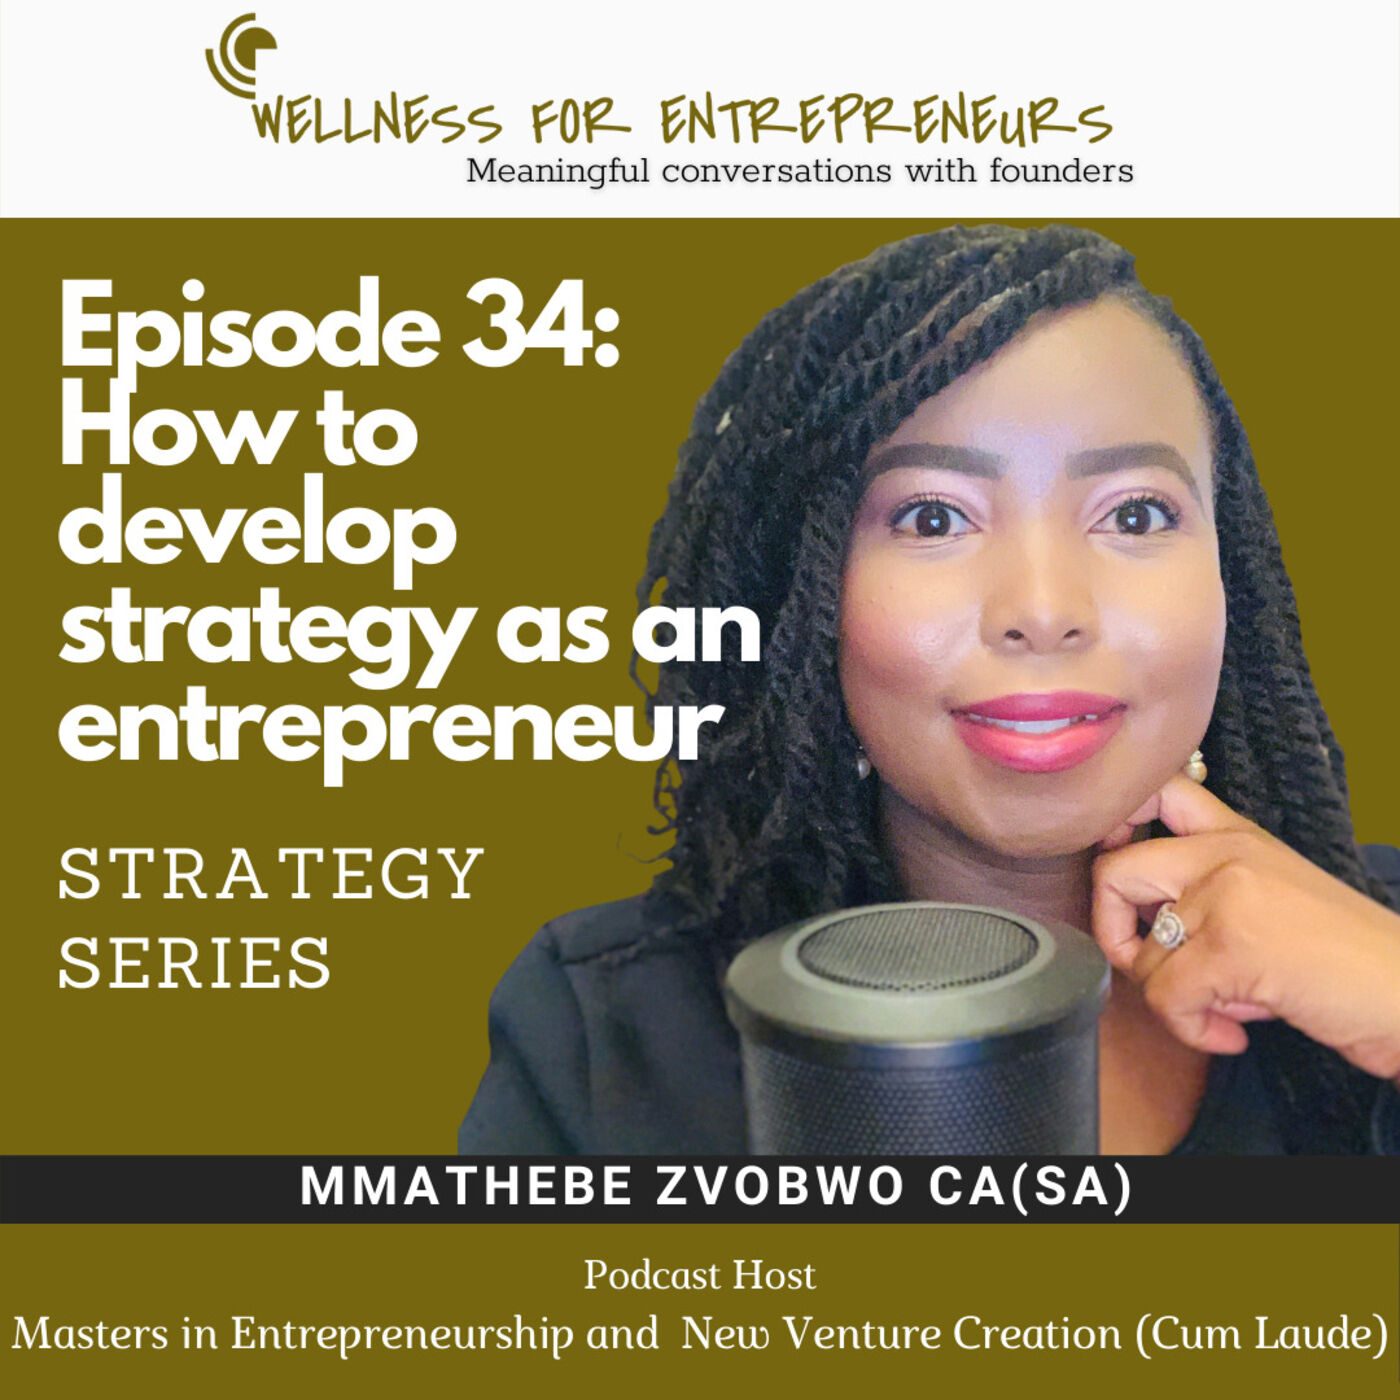 Episode 34: How to develop Strategy as an Entrepreneur